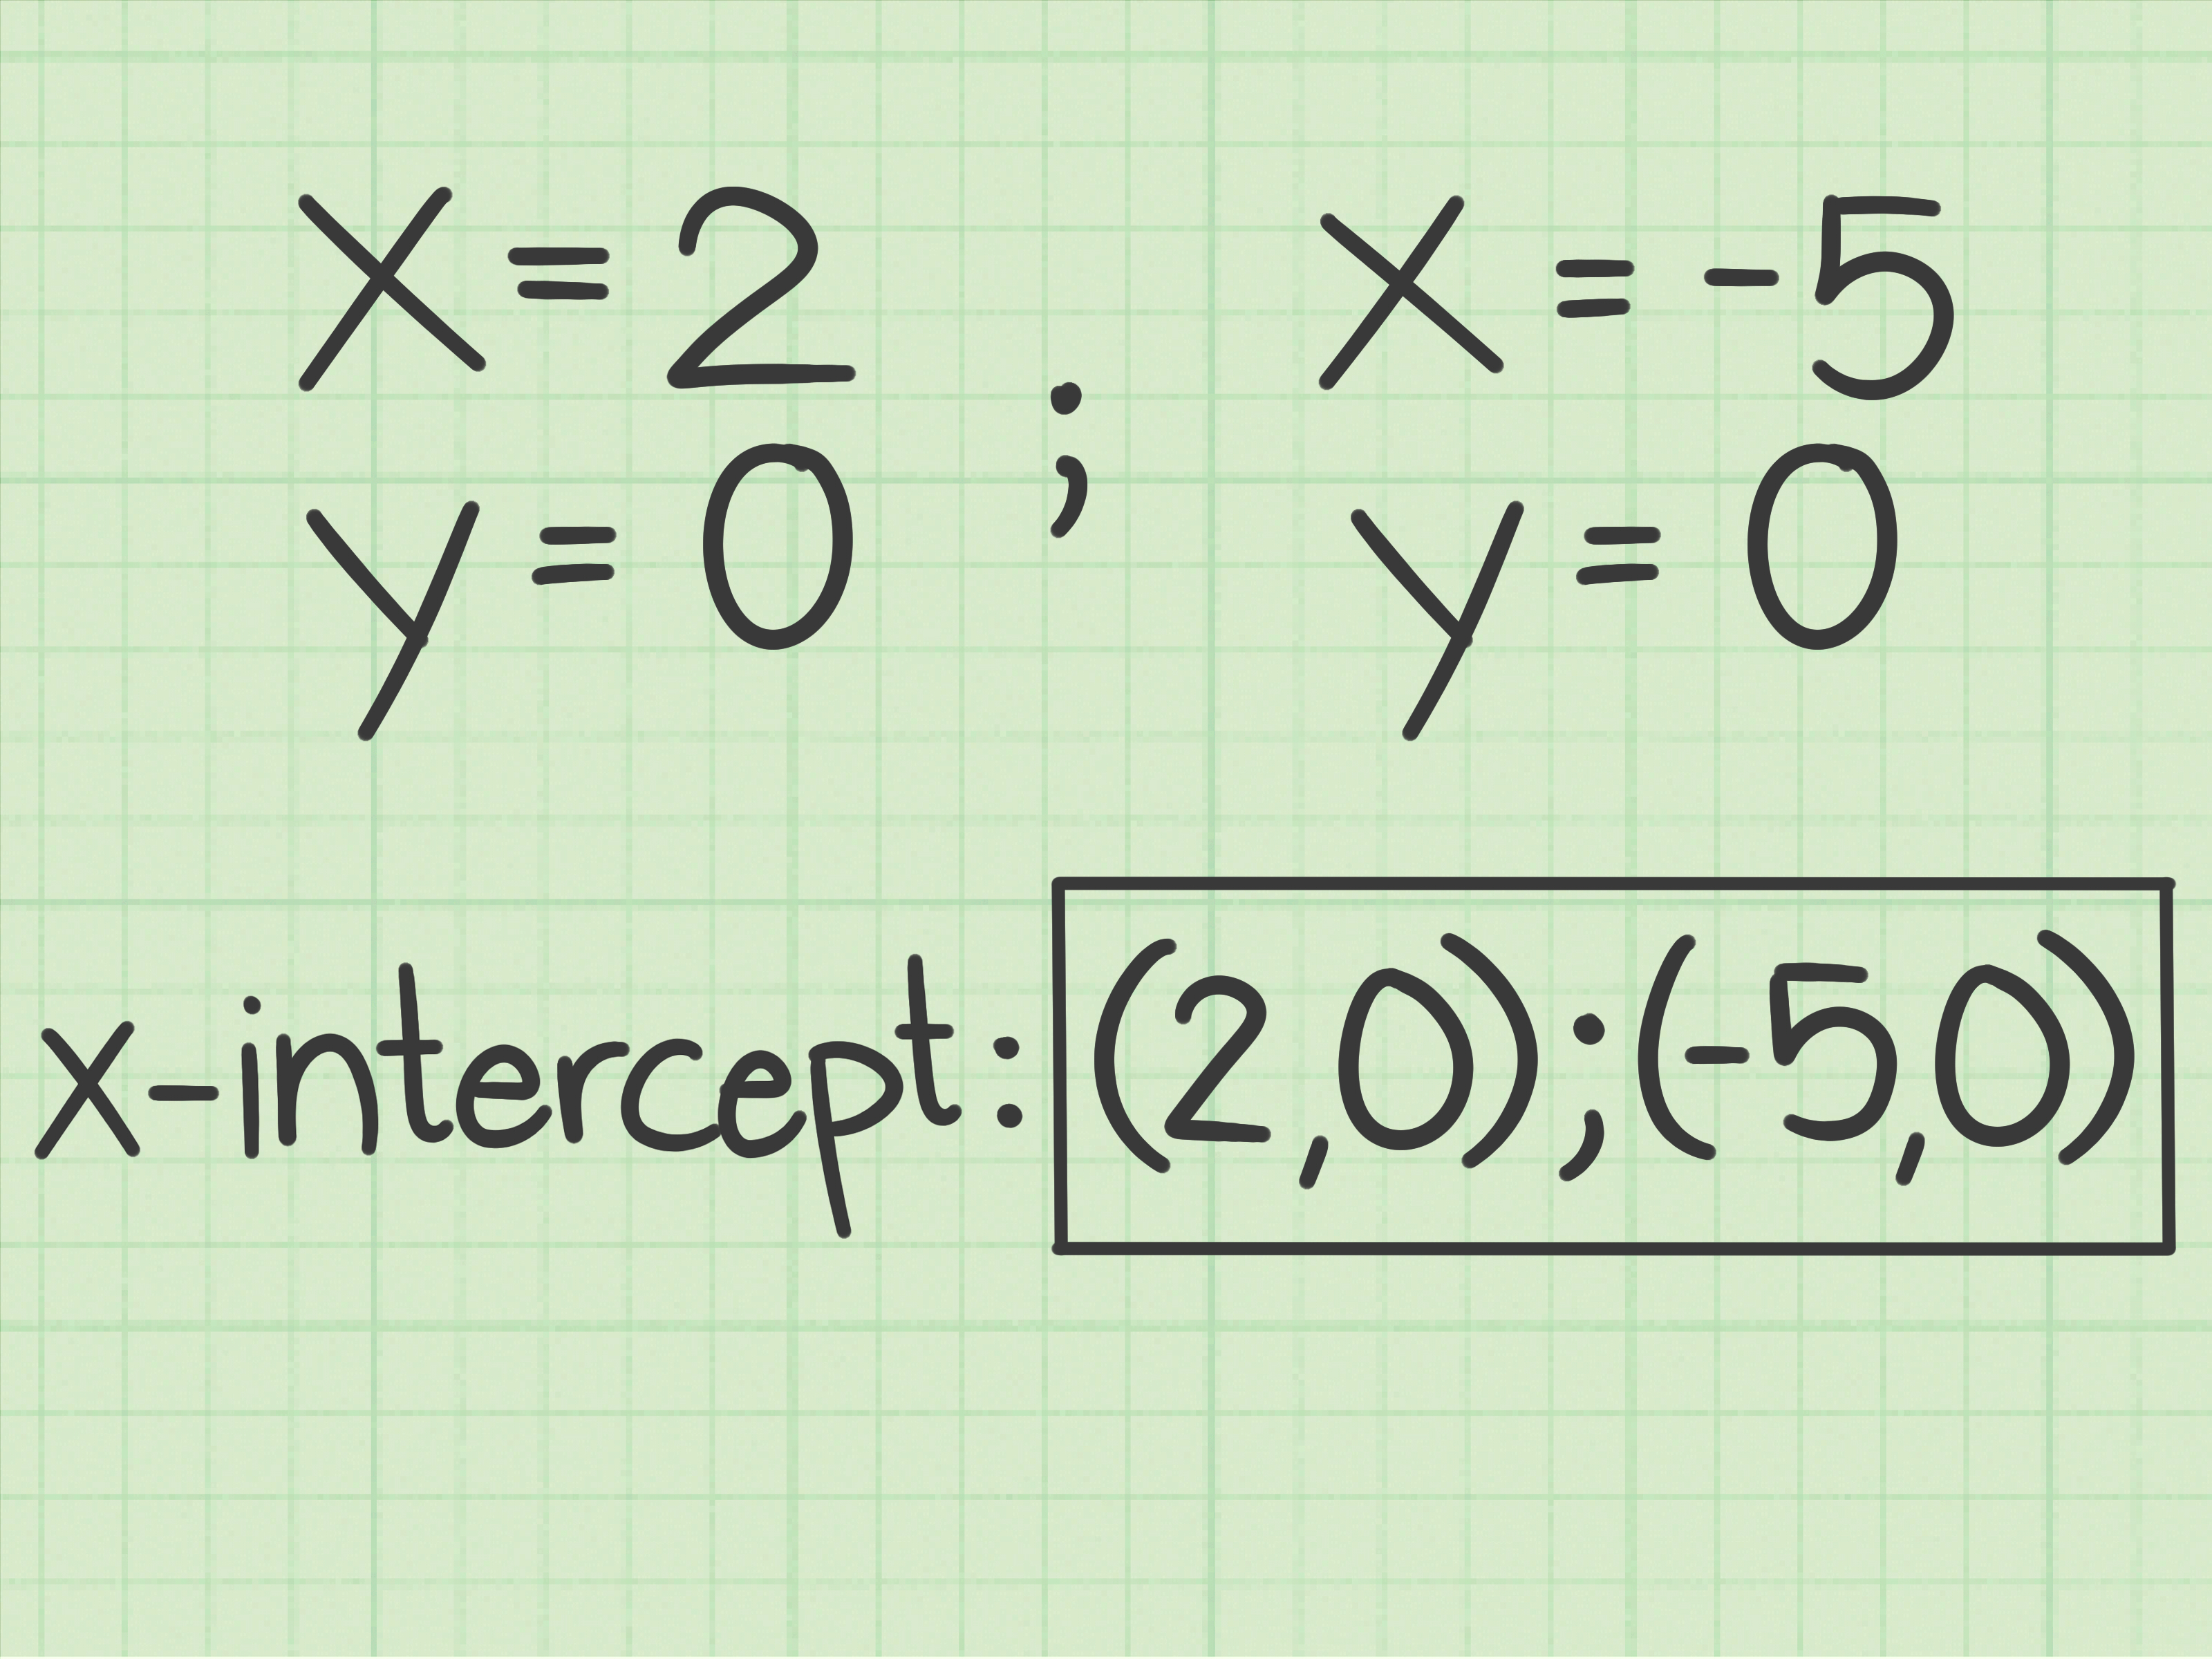 3 Ways To Find The X Intercept